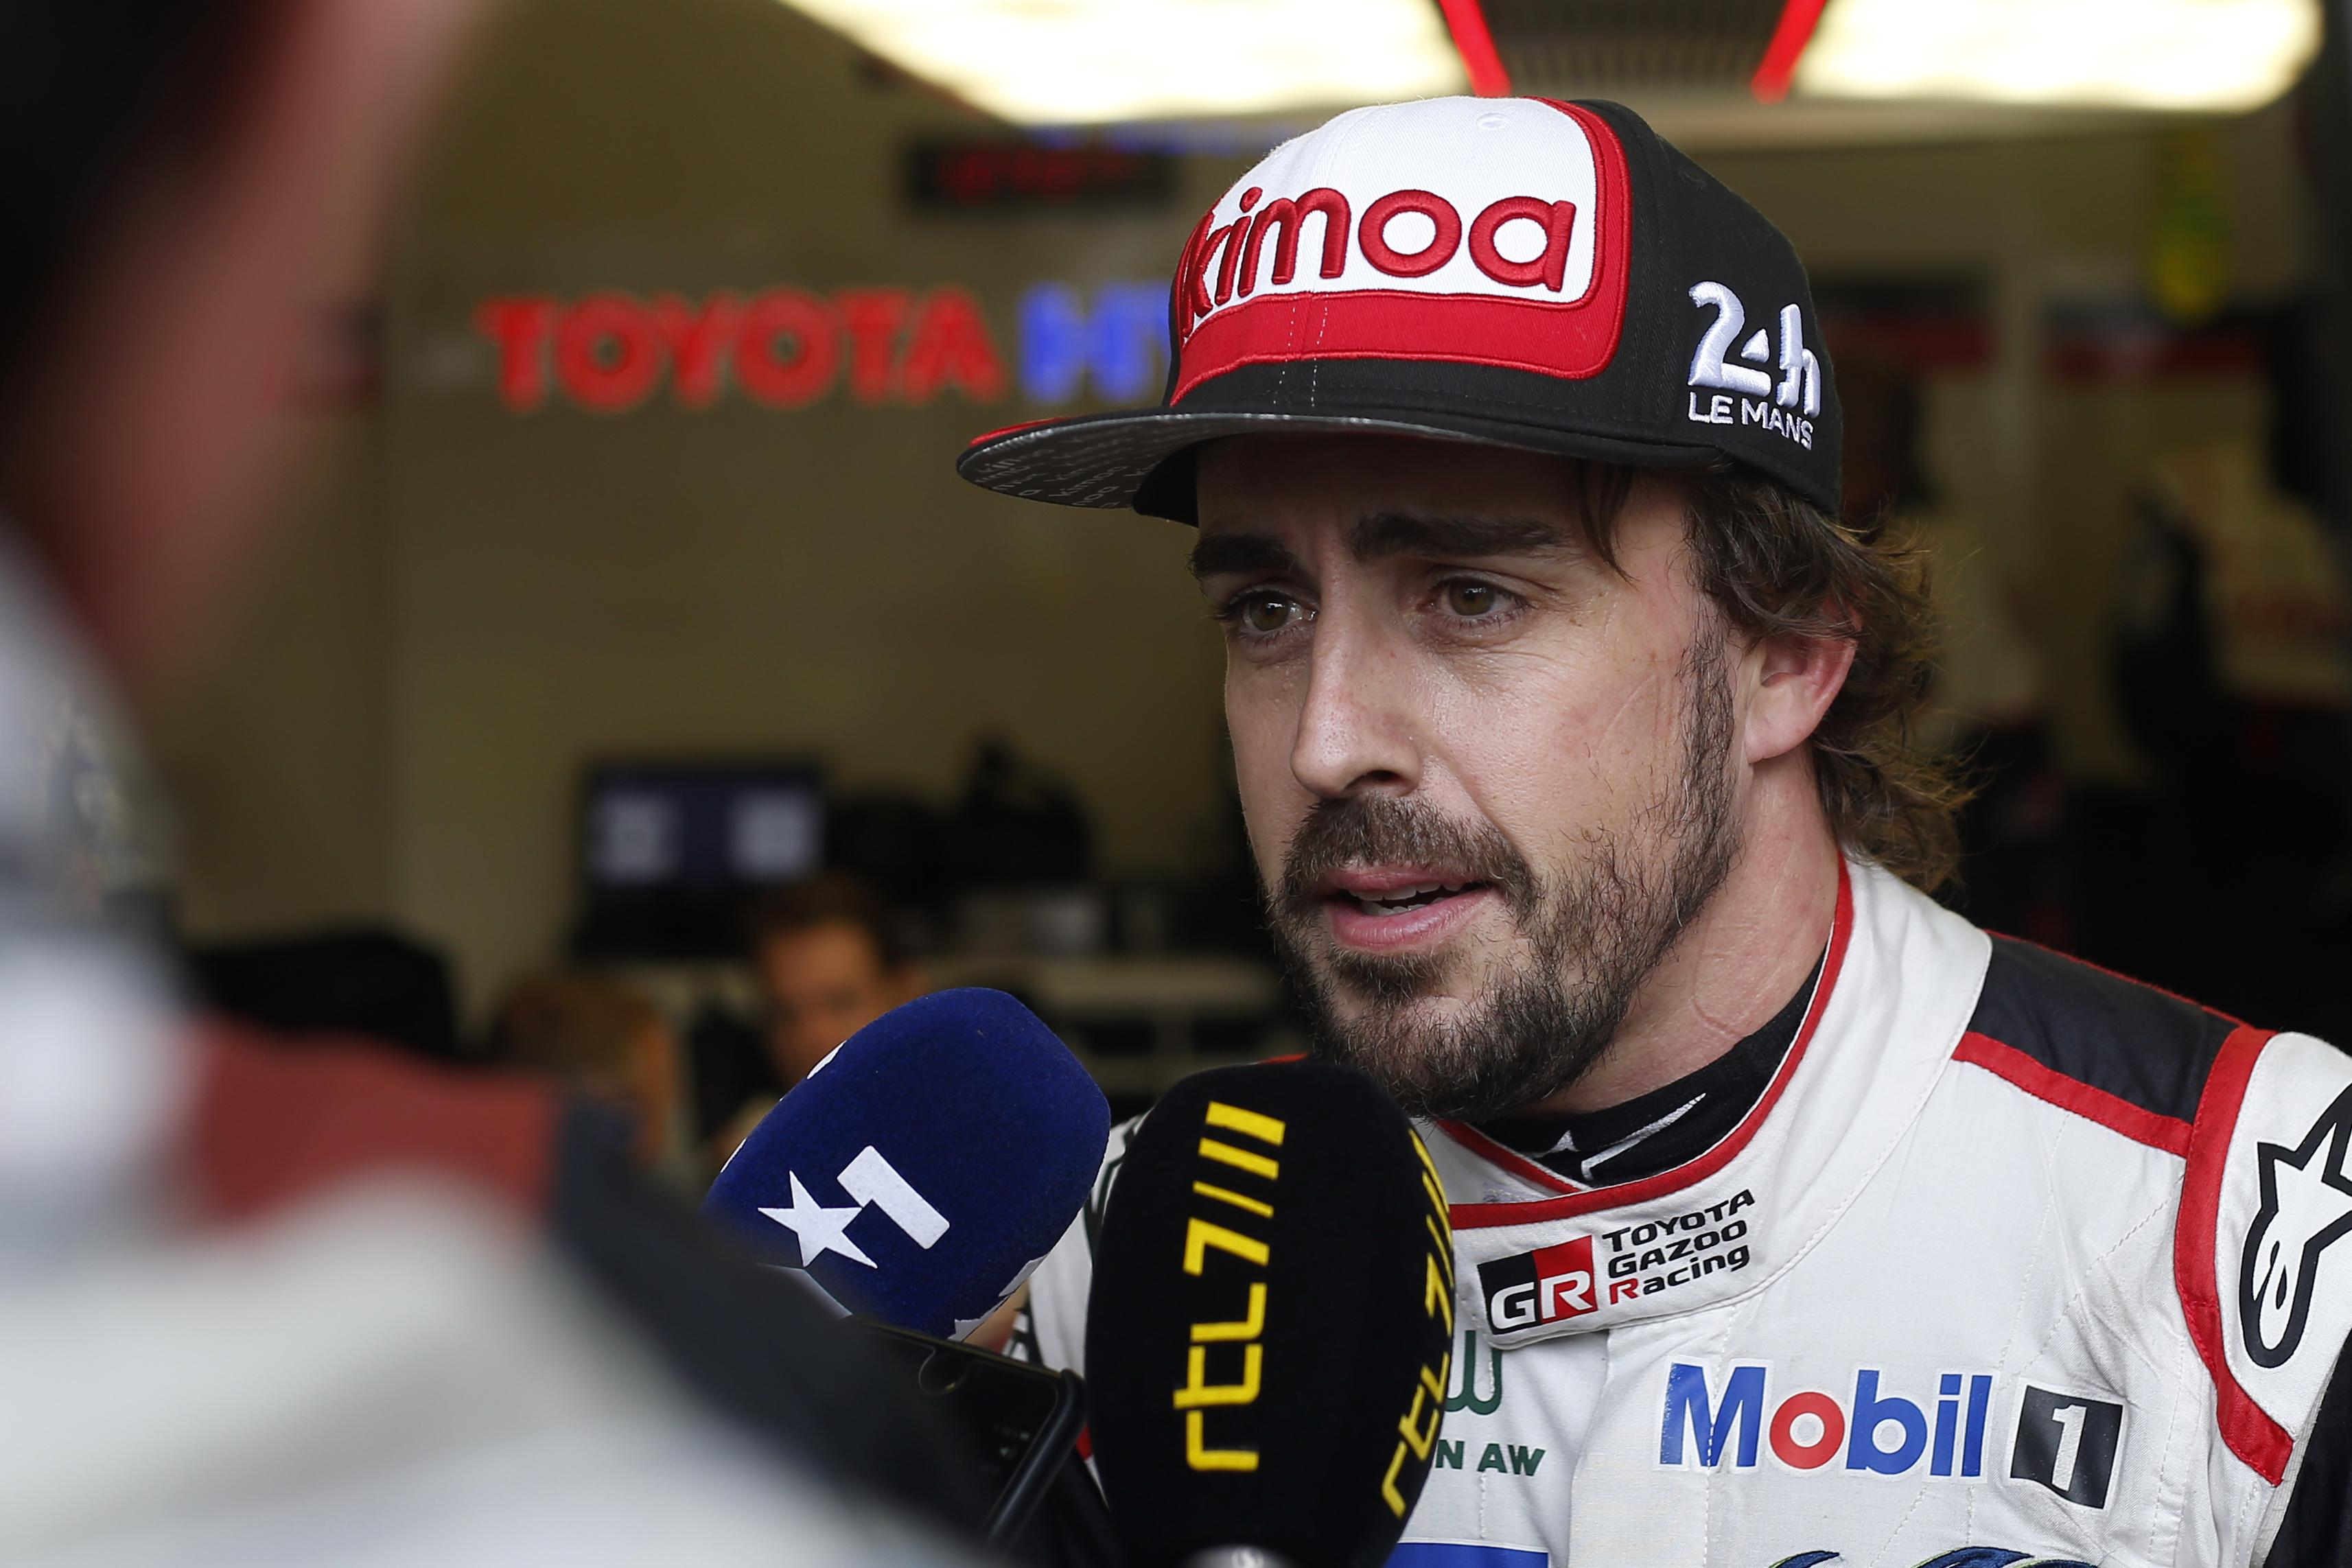 Alonso and his Toyota hybrid were big favourites - and now he has 2/3 of the triple crown